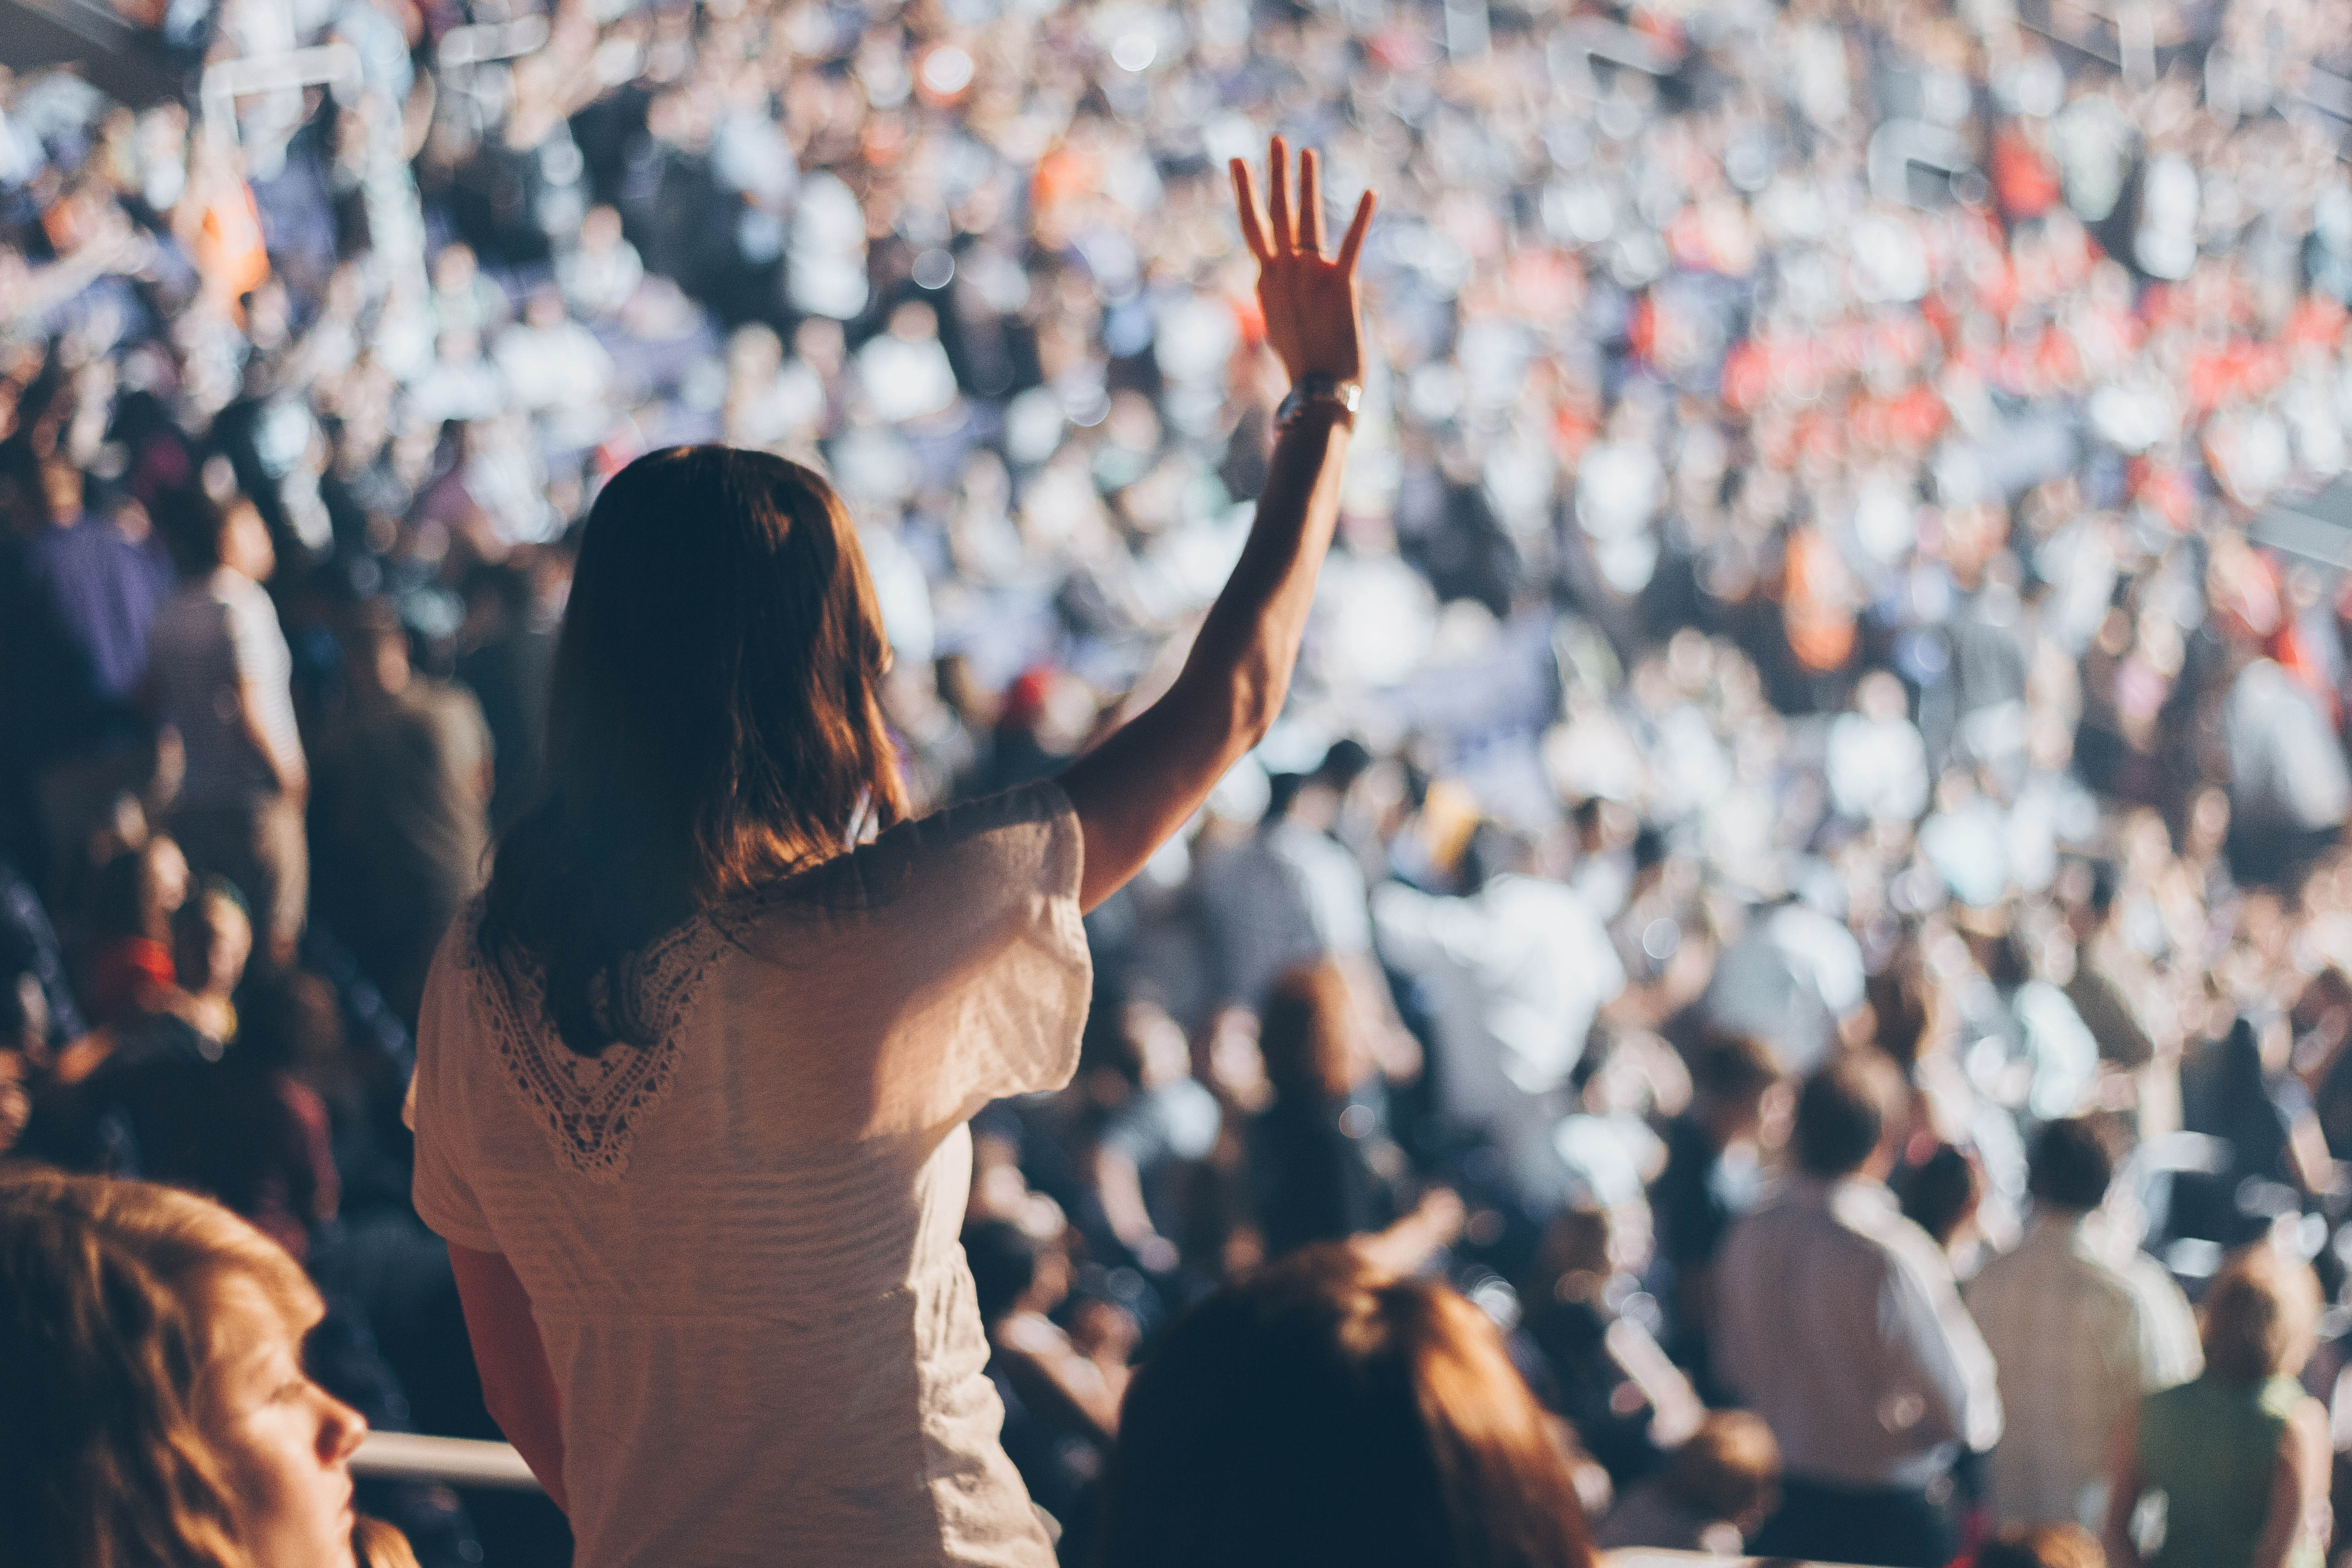 Woman With White Shirt Raising Her Right Hand